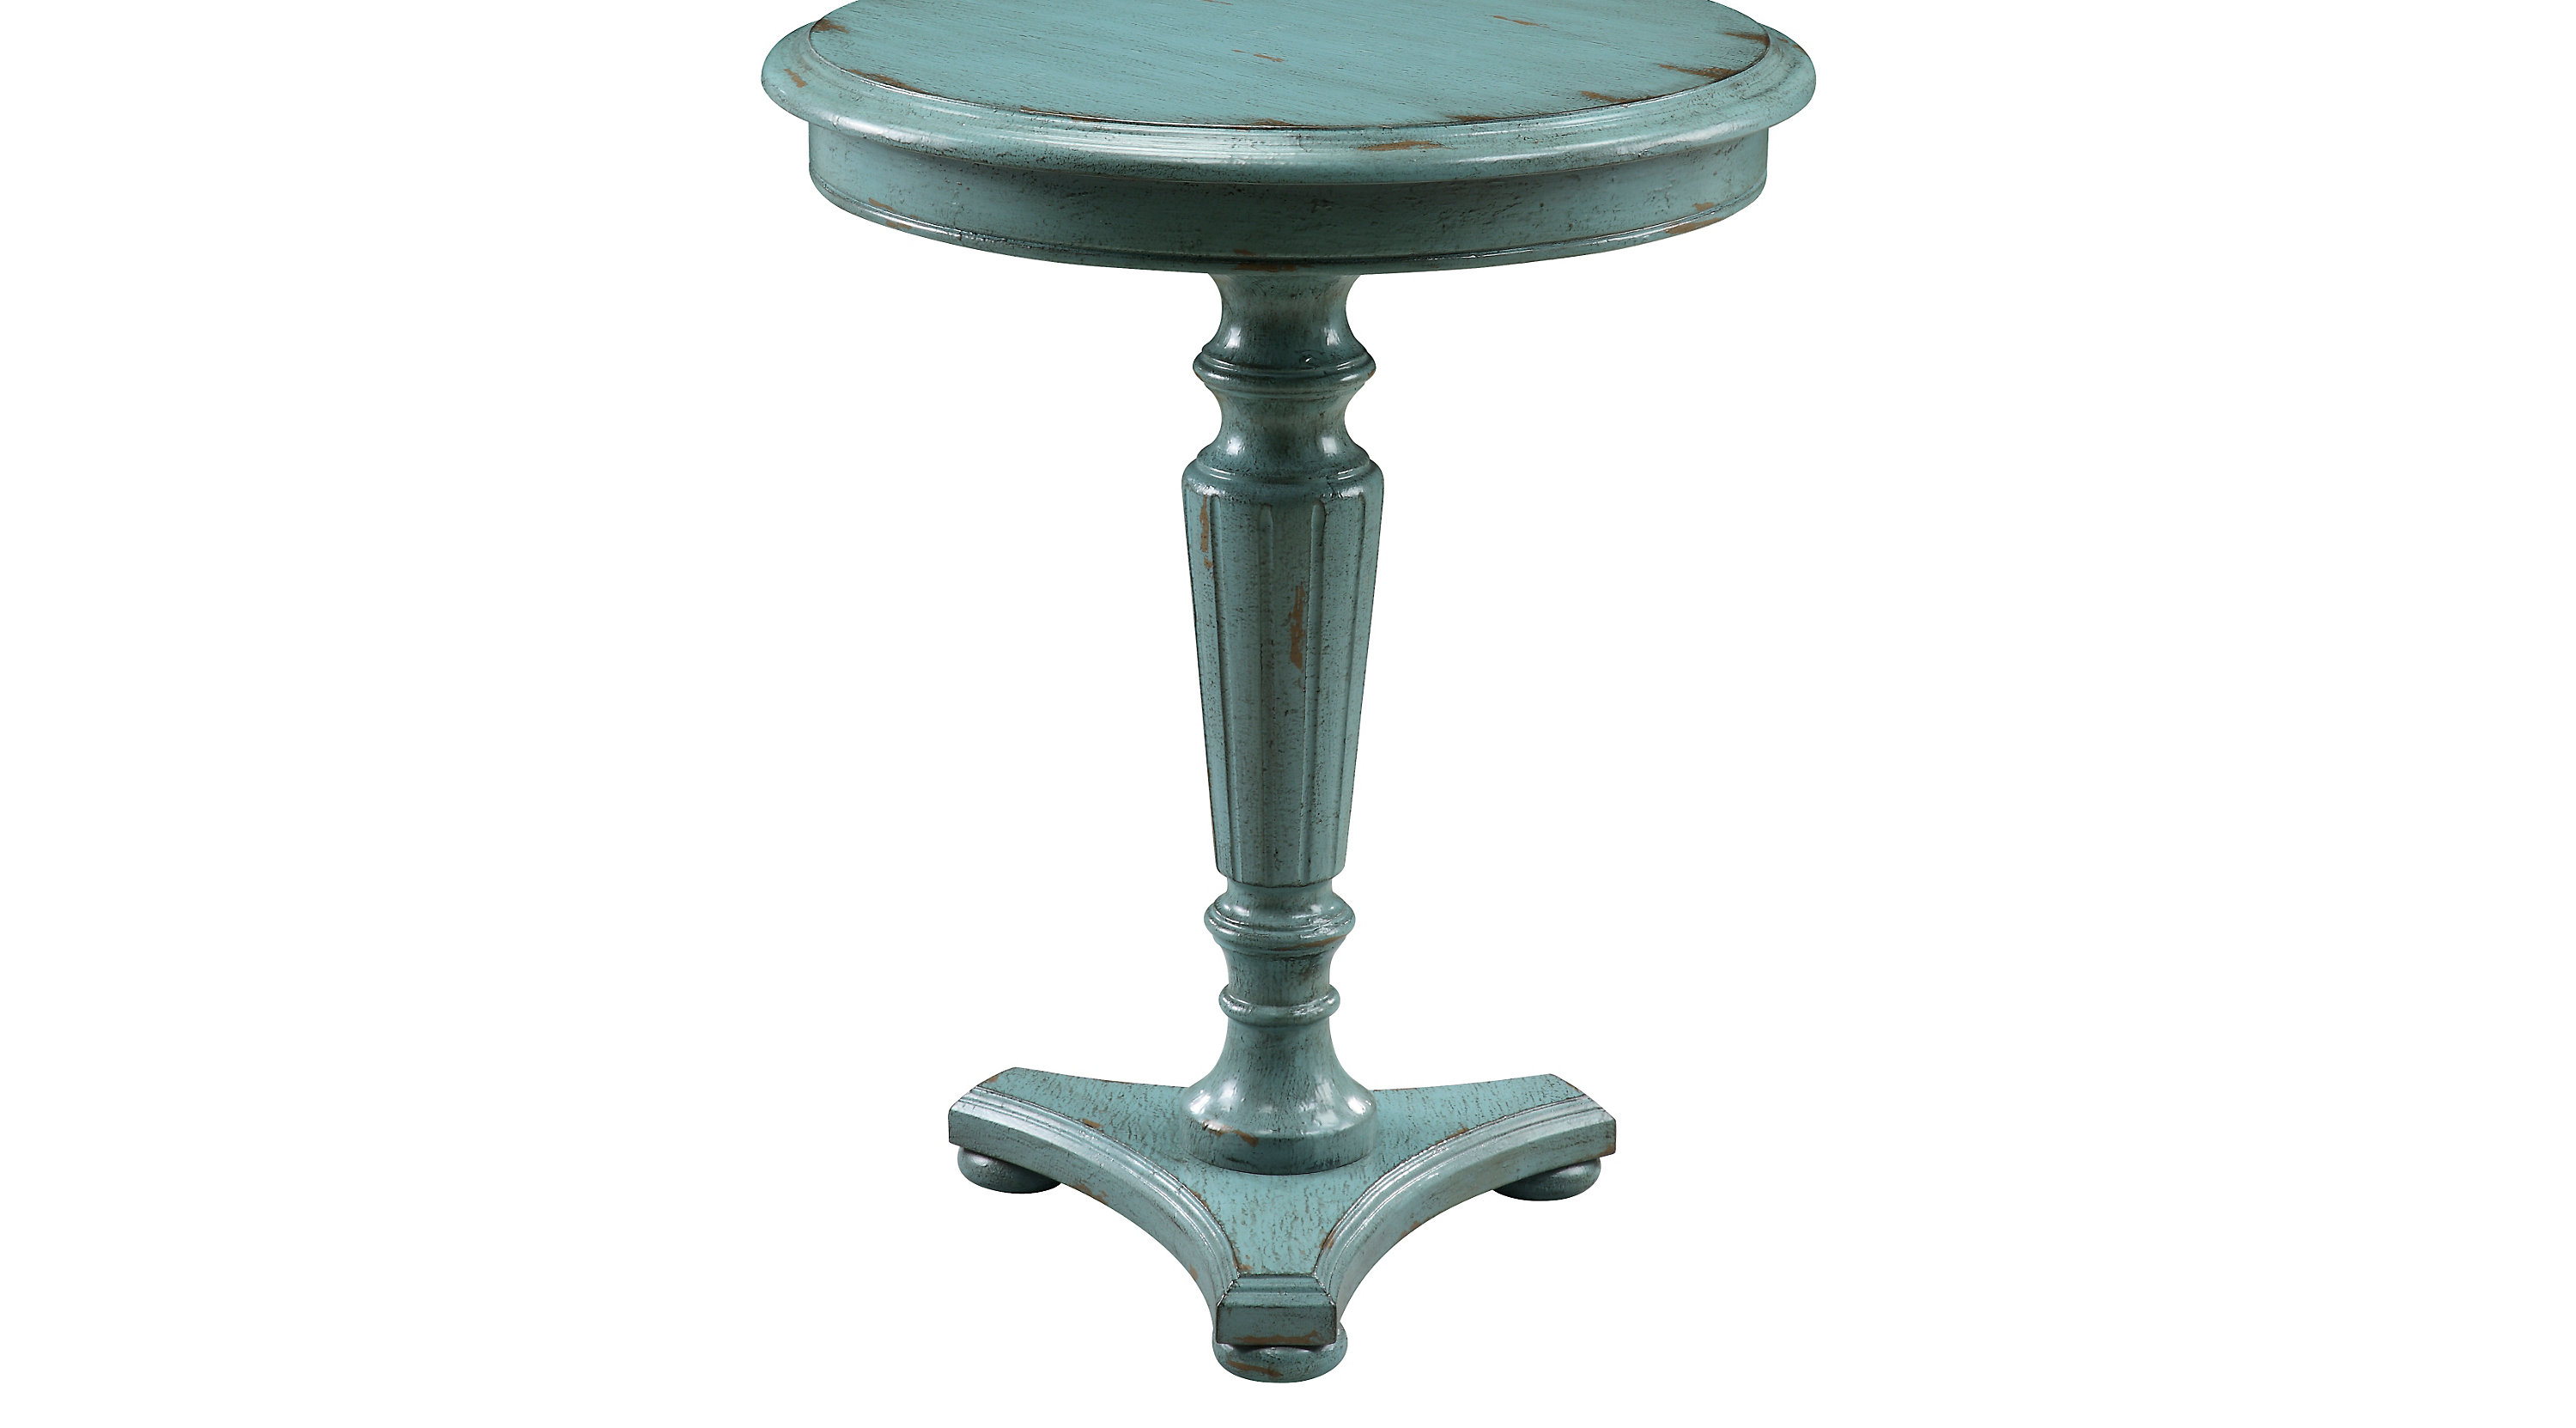 traditional accent tables classic side table styles nunnelly blue round cardboard all weather patio furniture chair dining pottery barn cocktail ethan allen fabrics drop leaf